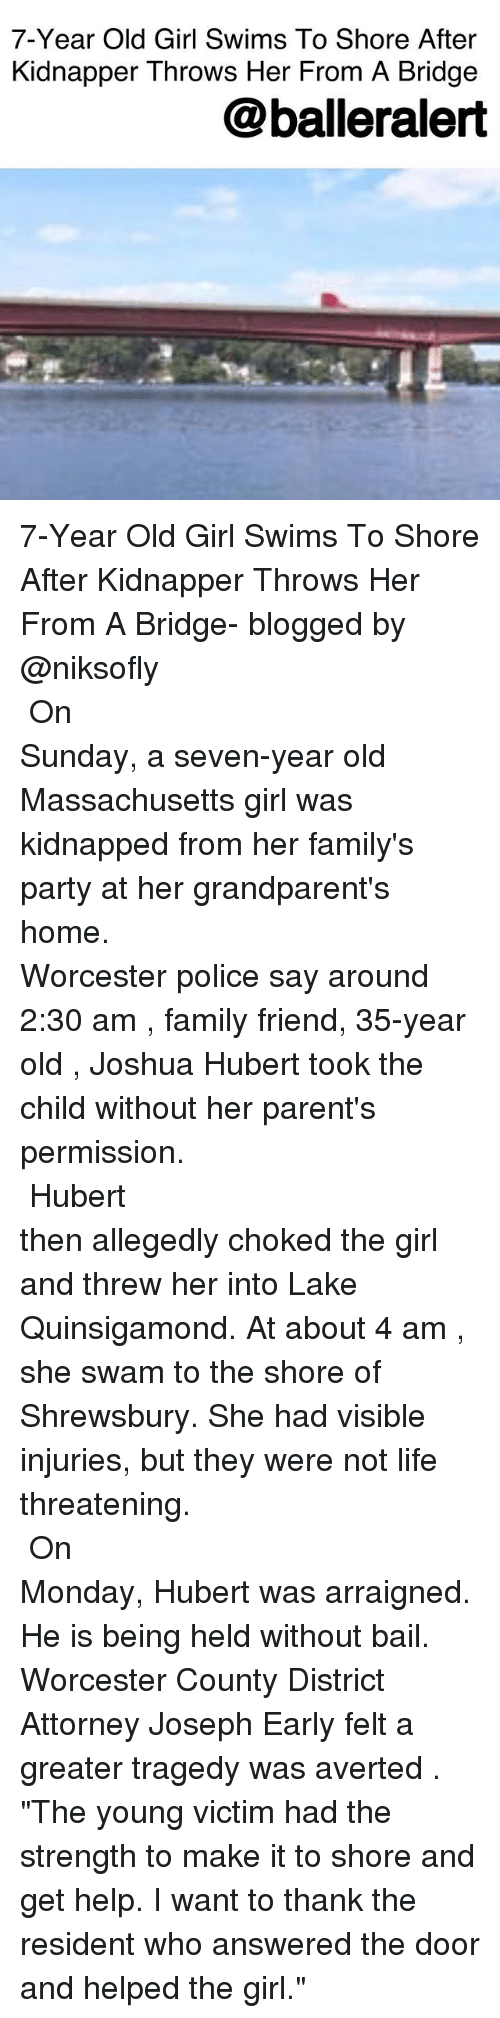 "Family, Life, and Memes: 7-Year Old Girl Swims To Shore After  Kidnapper Throws Her From A Bridge  @balleralert 7-Year Old Girl Swims To Shore After Kidnapper Throws Her From A Bridge- blogged by @niksofly ⠀⠀⠀⠀⠀⠀⠀⠀⠀⠀⠀⠀⠀⠀⠀⠀⠀⠀⠀⠀⠀⠀⠀⠀⠀⠀⠀⠀⠀⠀⠀⠀⠀⠀⠀⠀ On Sunday, a seven-year old Massachusetts girl was kidnapped from her family's party at her grandparent's home. ⠀⠀⠀⠀⠀⠀⠀⠀⠀⠀⠀⠀⠀⠀⠀⠀⠀⠀⠀⠀⠀⠀⠀⠀⠀⠀⠀⠀⠀⠀⠀⠀⠀⠀⠀⠀ Worcester police say around 2:30 am , family friend, 35-year old , Joshua Hubert took the child without her parent's permission. ⠀⠀⠀⠀⠀⠀⠀⠀⠀⠀⠀⠀⠀⠀⠀⠀⠀⠀⠀⠀⠀⠀⠀⠀⠀⠀⠀⠀⠀⠀⠀⠀⠀⠀⠀⠀ Hubert then allegedly choked the girl and threw her into Lake Quinsigamond. At about 4 am , she swam to the shore of Shrewsbury. She had visible injuries, but they were not life threatening. ⠀⠀⠀⠀⠀⠀⠀⠀⠀⠀⠀⠀⠀⠀⠀⠀⠀⠀⠀⠀⠀⠀⠀⠀⠀⠀⠀⠀⠀⠀⠀⠀⠀⠀⠀⠀ On Monday, Hubert was arraigned. He is being held without bail. Worcester County District Attorney Joseph Early felt a greater tragedy was averted . ""The young victim had the strength to make it to shore and get help. I want to thank the resident who answered the door and helped the girl."""